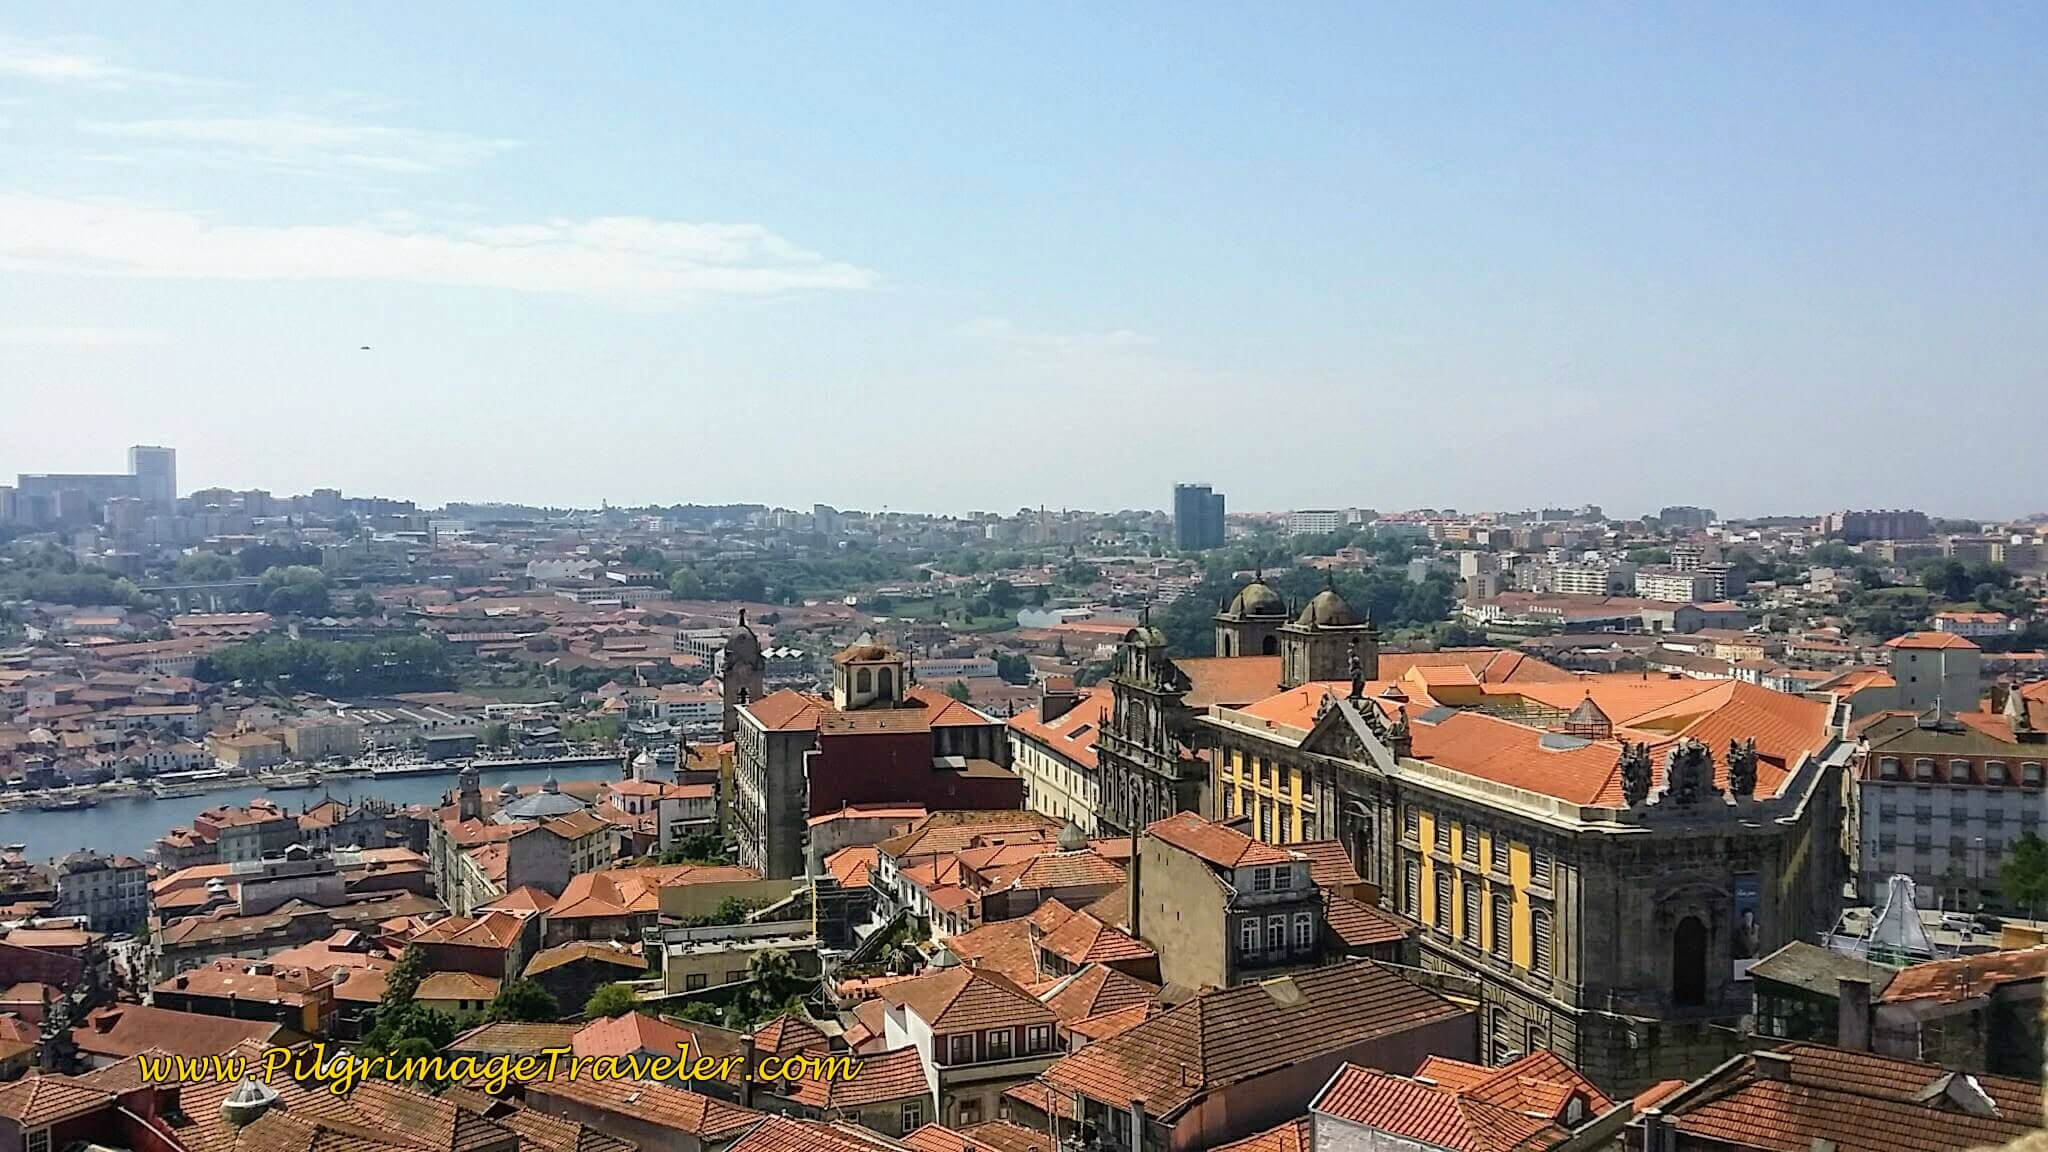 View Southwest of Gaia and the Douro River from the Clérigos Tower in Porto, Portugal